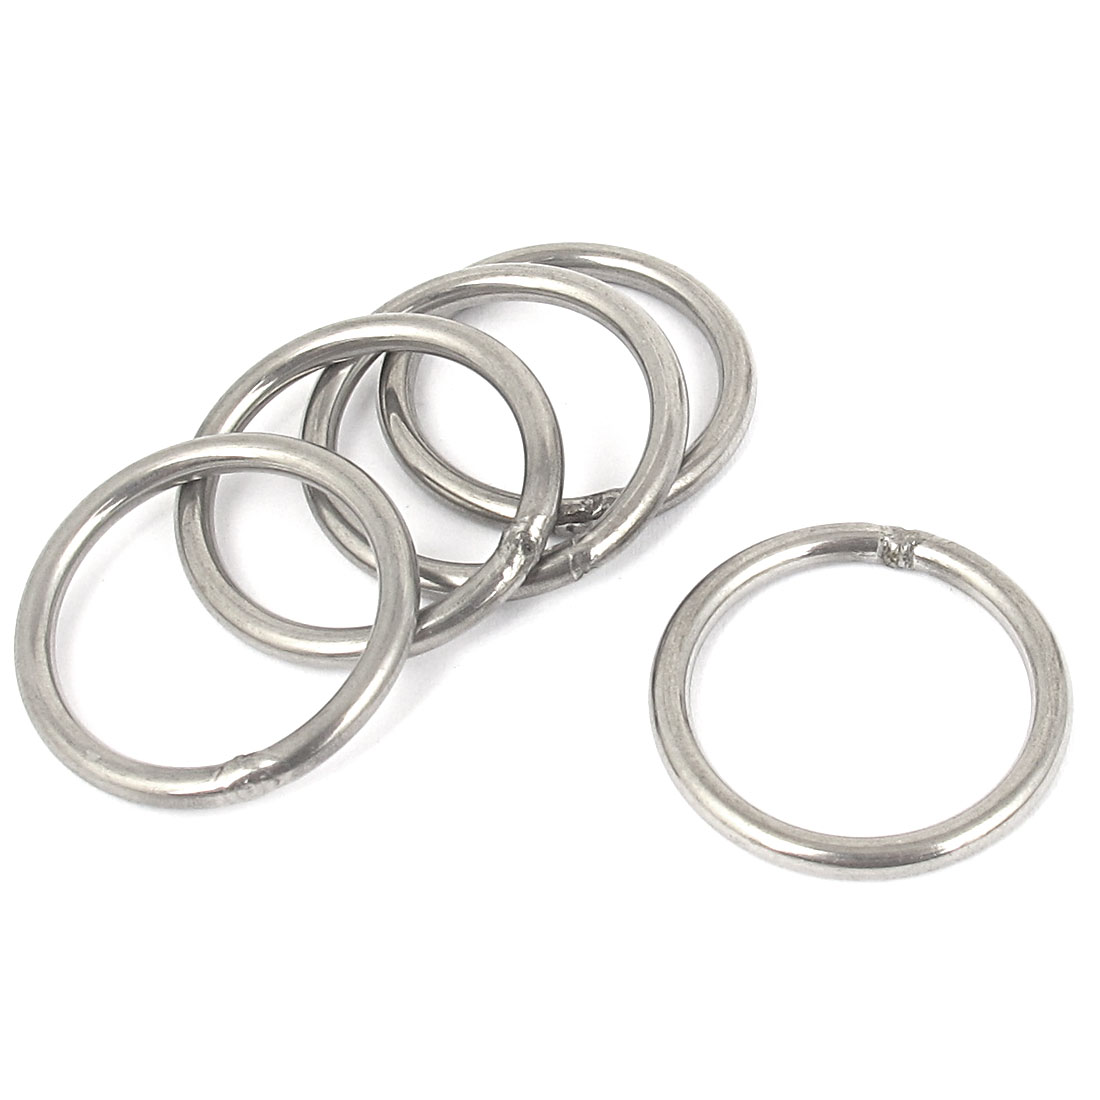 3mmx30mm Stainless Steel Welded O Ring 5pcs for Bags Key Chains Key Rings